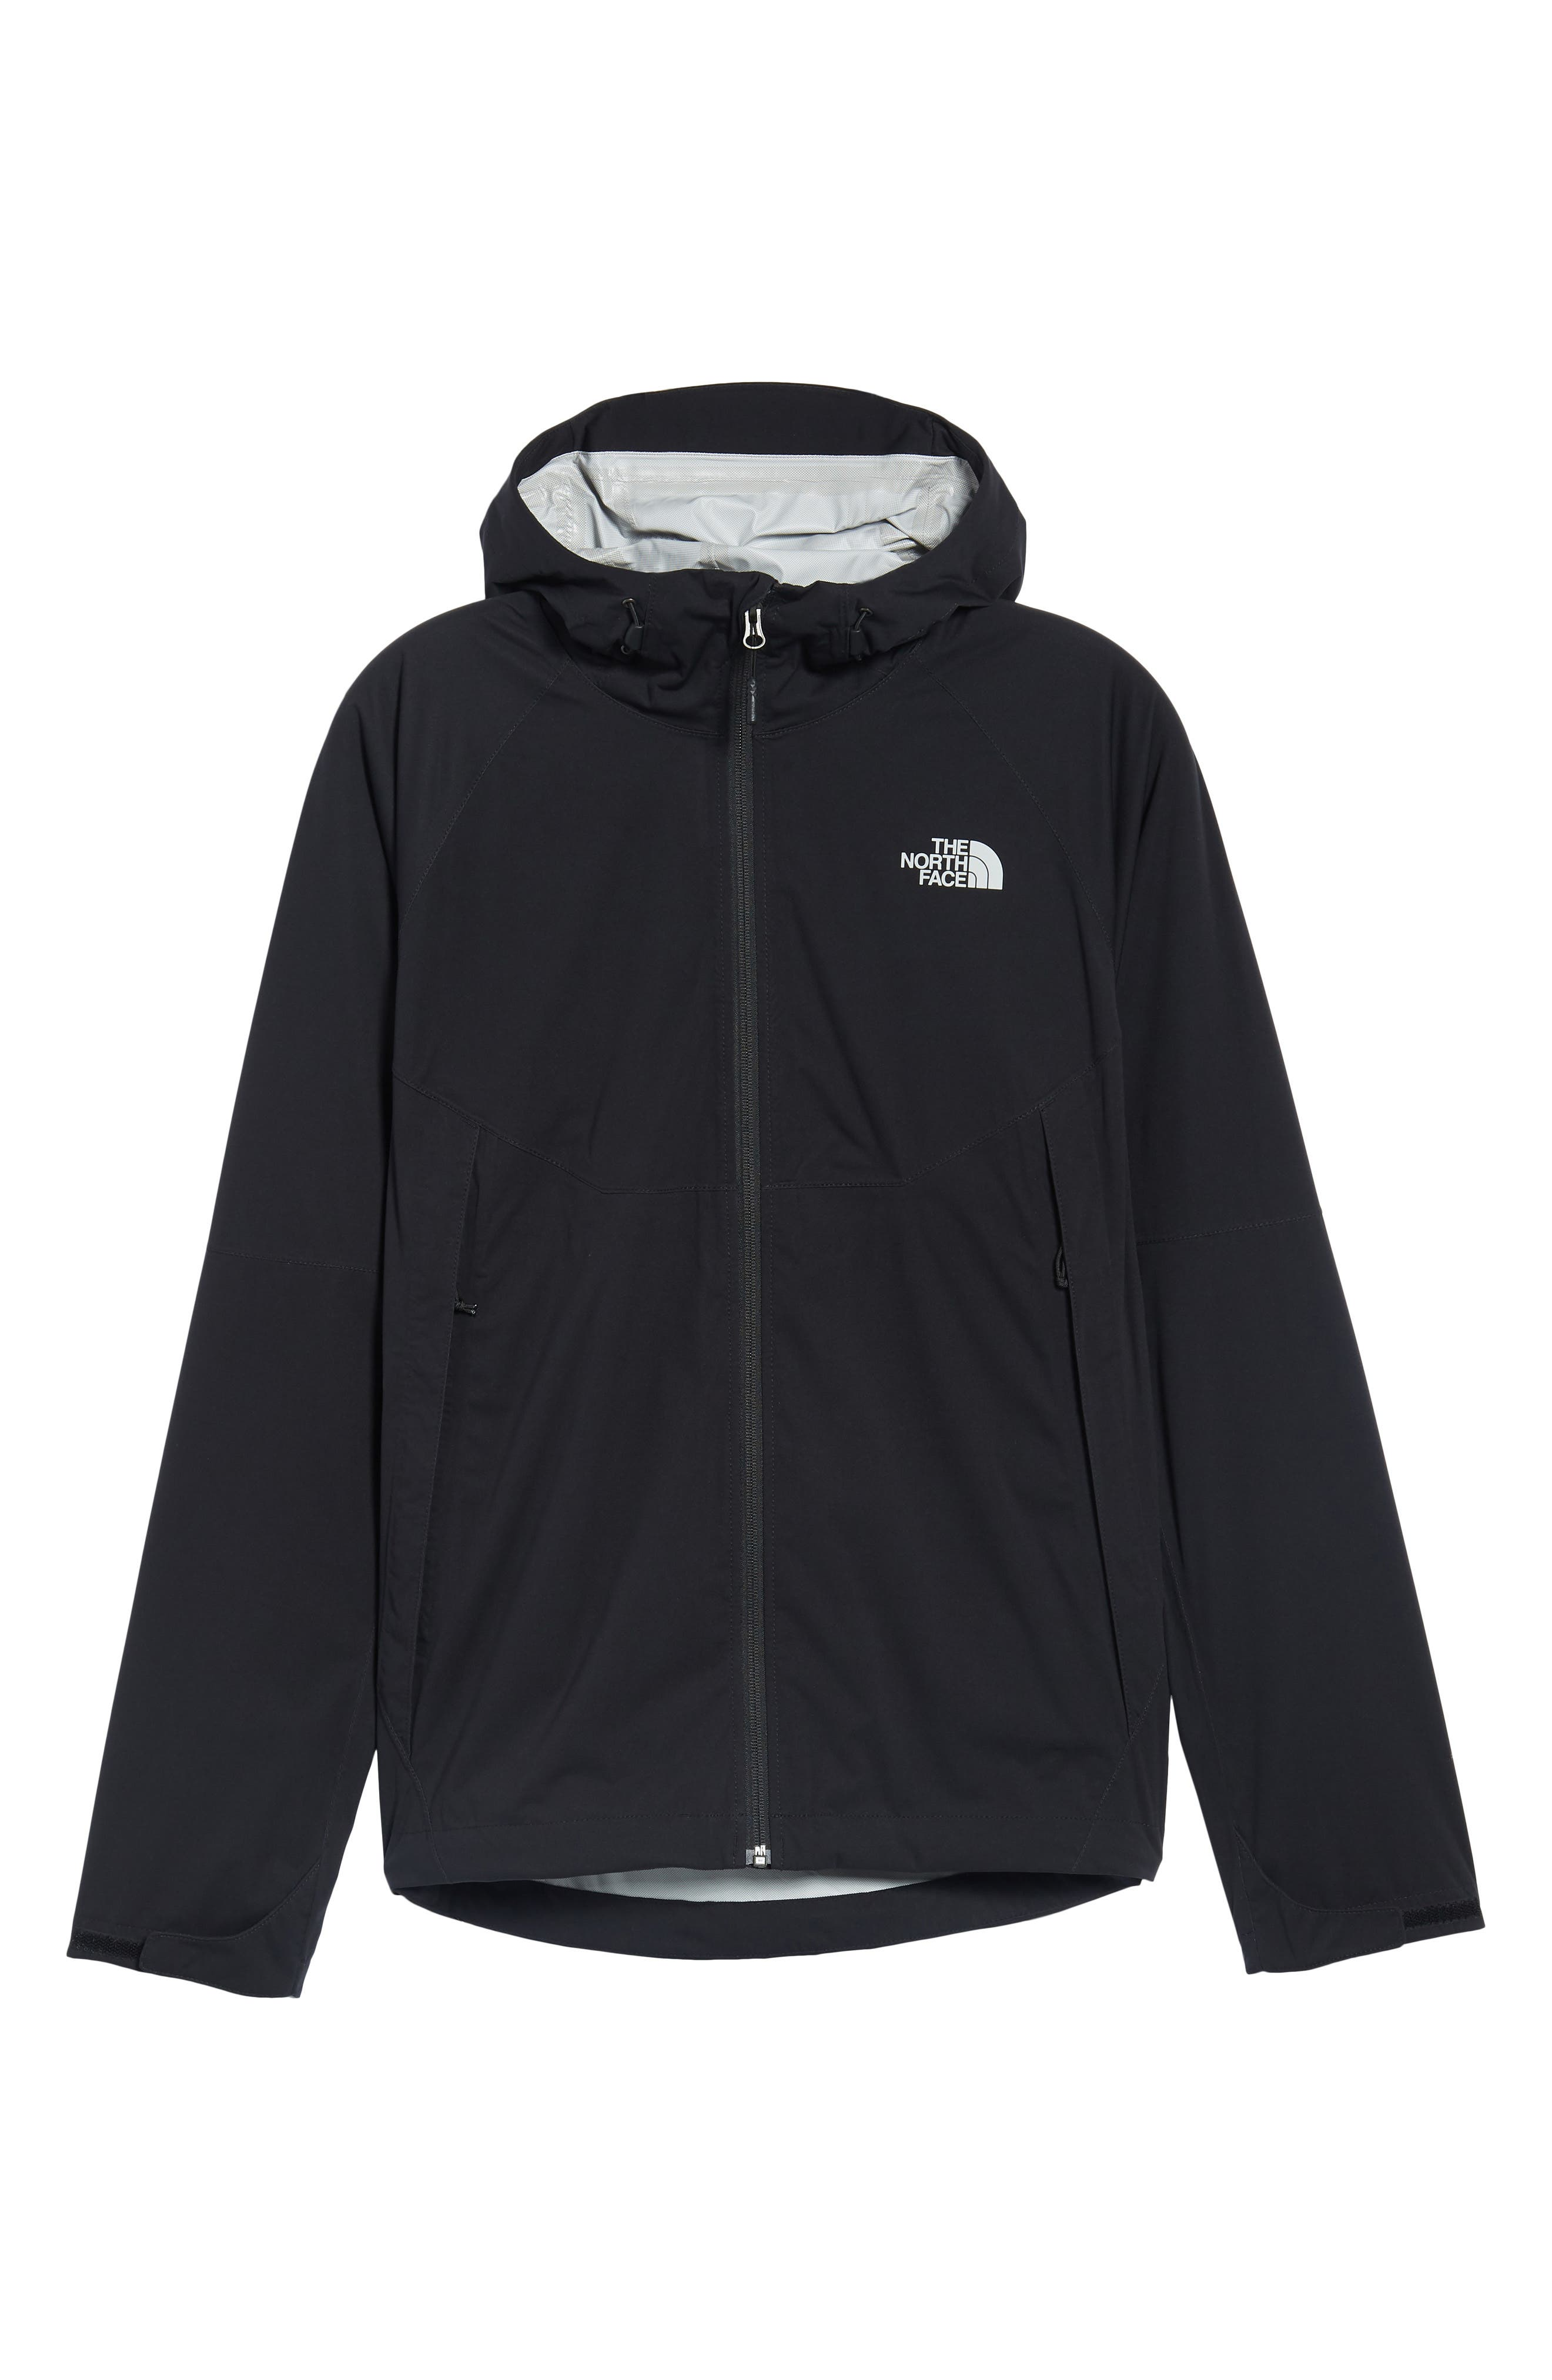 THE NORTH FACE, Allproof Stretch Hooded Rain Jacket, Alternate thumbnail 6, color, 001